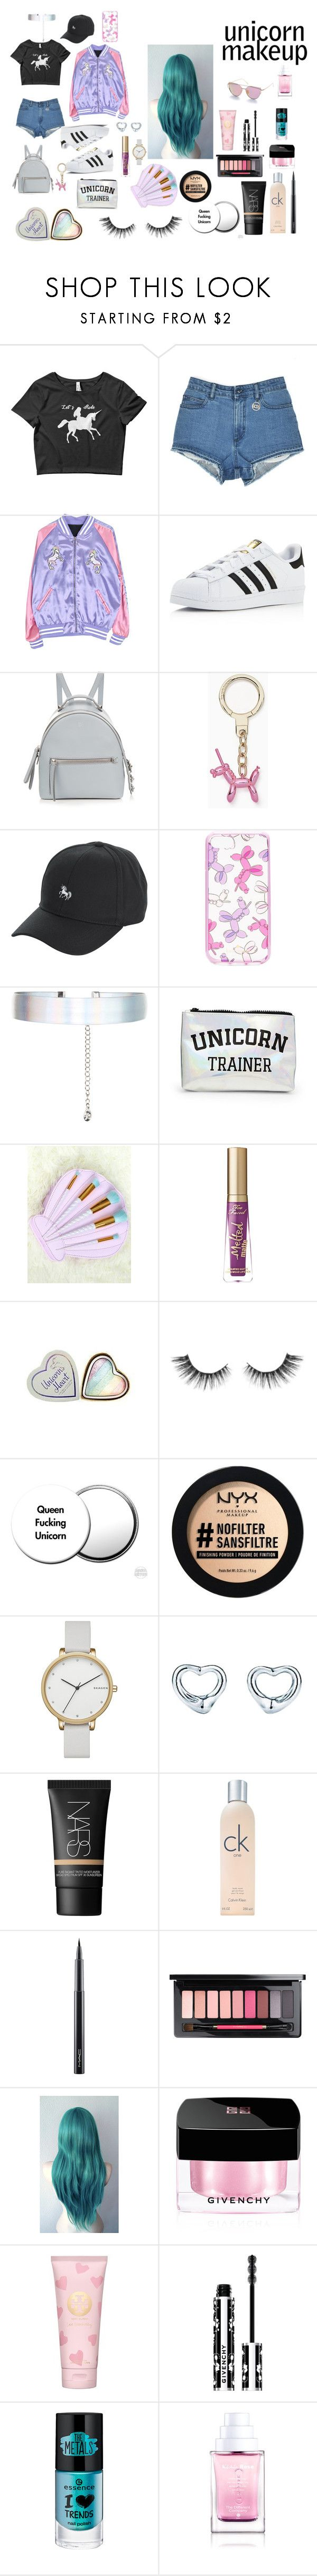 """Untitled #210"" by khyara on Polyvore featuring adidas, Fendi, Kate Spade, Accessorize, Forever 21, Too Faced Cosmetics, Unicorn Lashes, NYX, Skagen and Tiffany & Co."